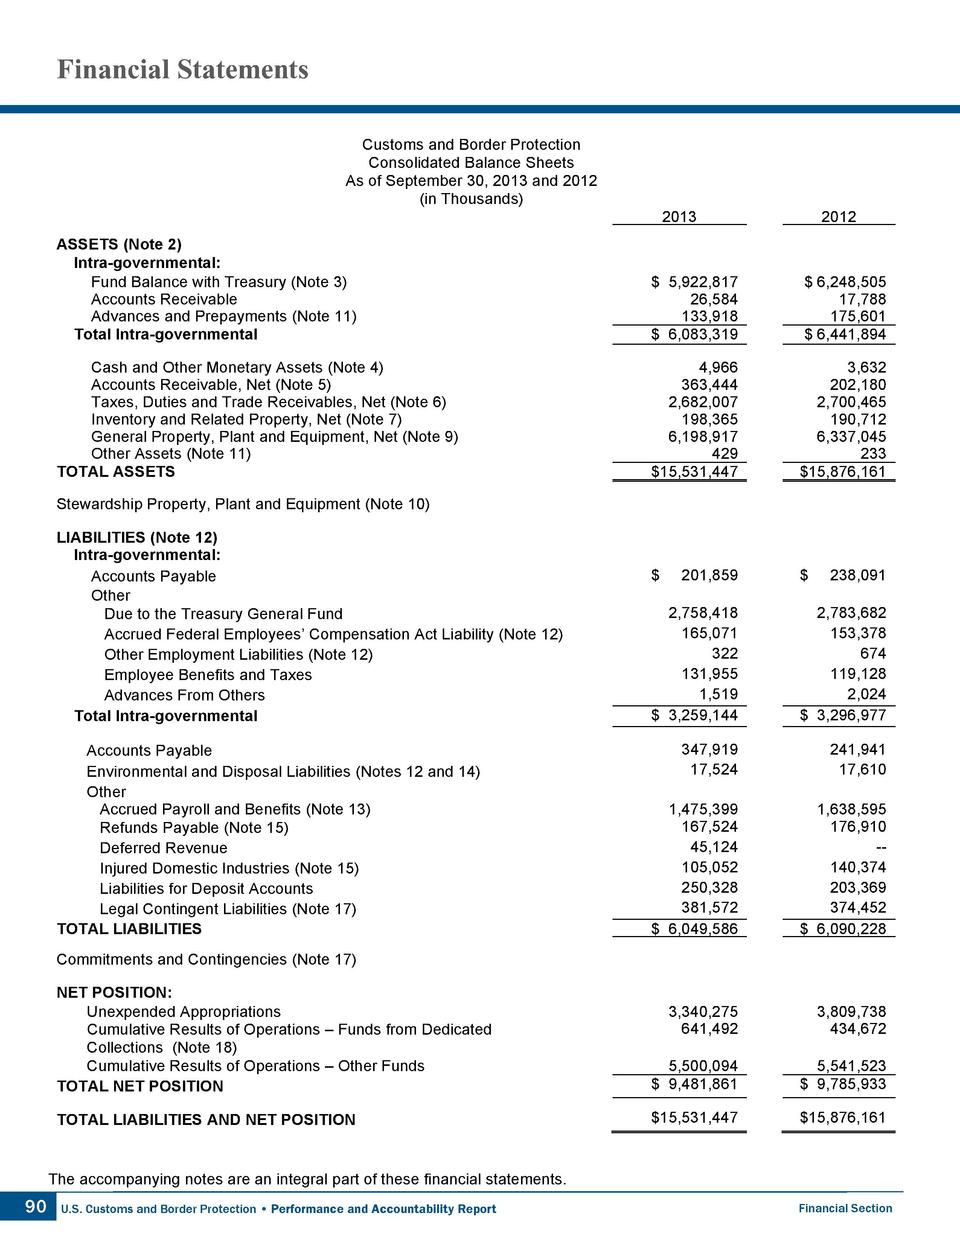 Financial Statements Customs and Border Protection Consolidated Balance Sheets As of September 30, 2013 and 2012  in Thous...